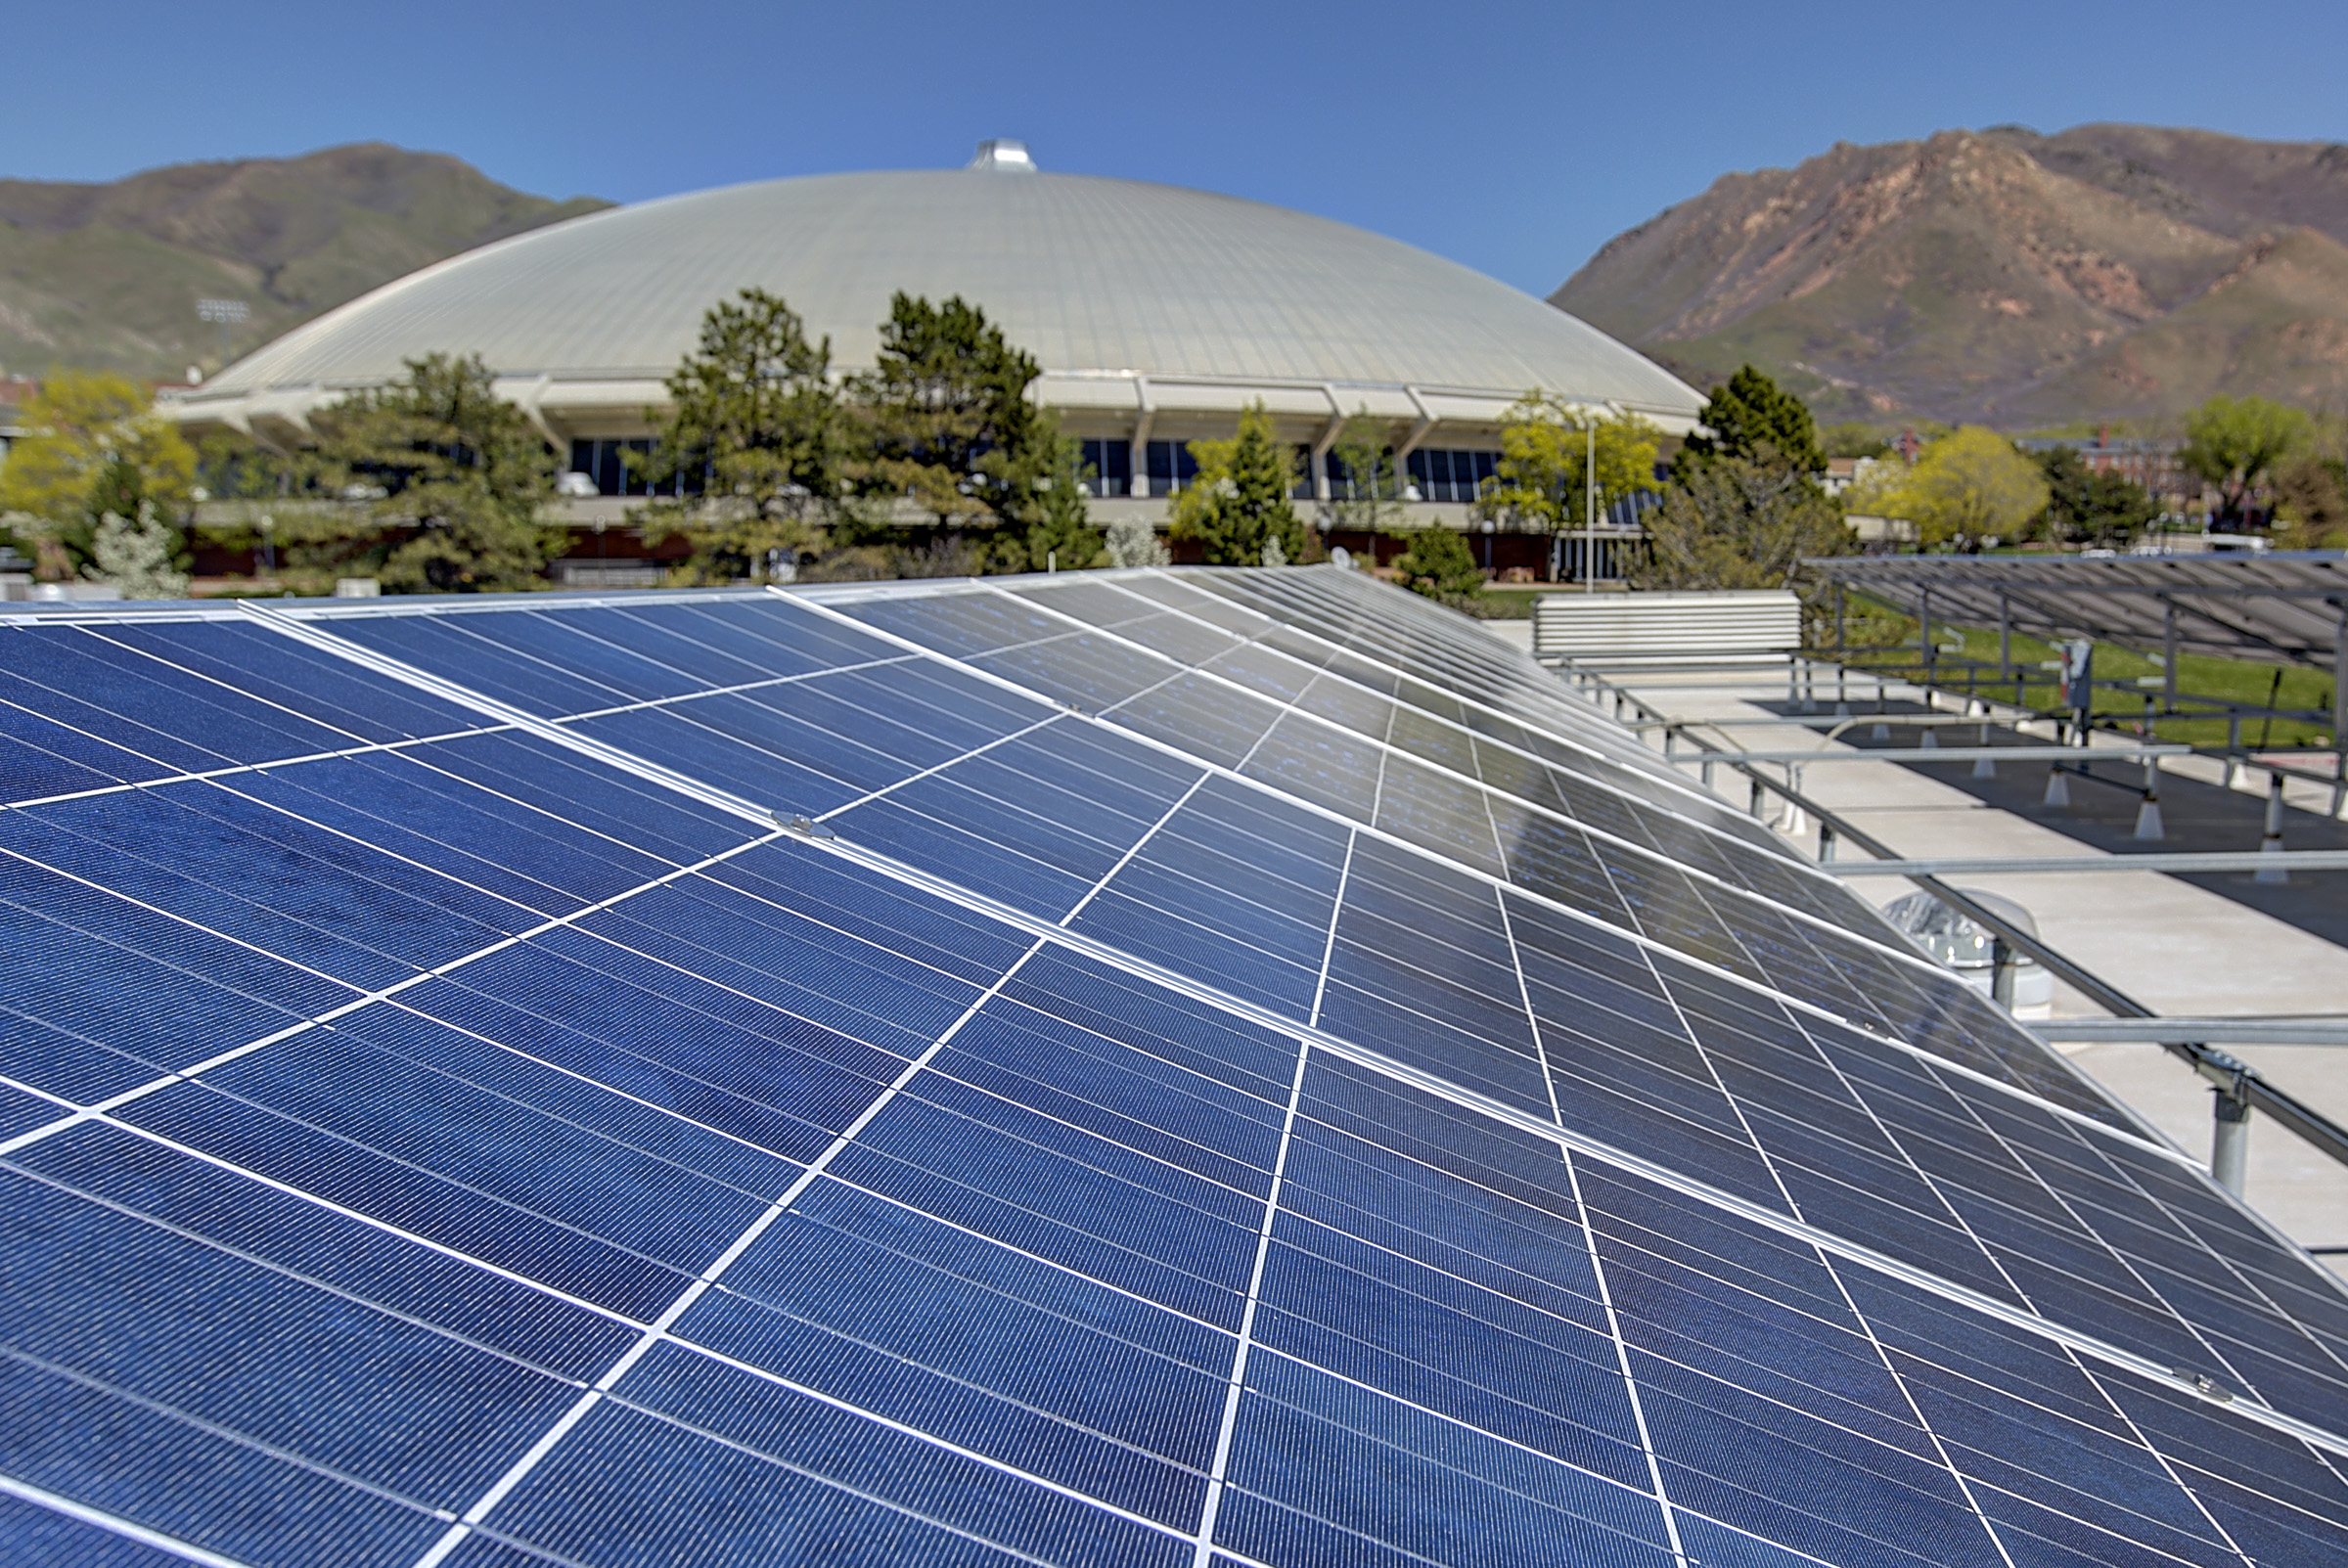 The University of Utah is the first university in the country to sponsor a community solar program. The program offers U community members the opportunity to purchase discounted rooftop solar panels and installation for their homes.